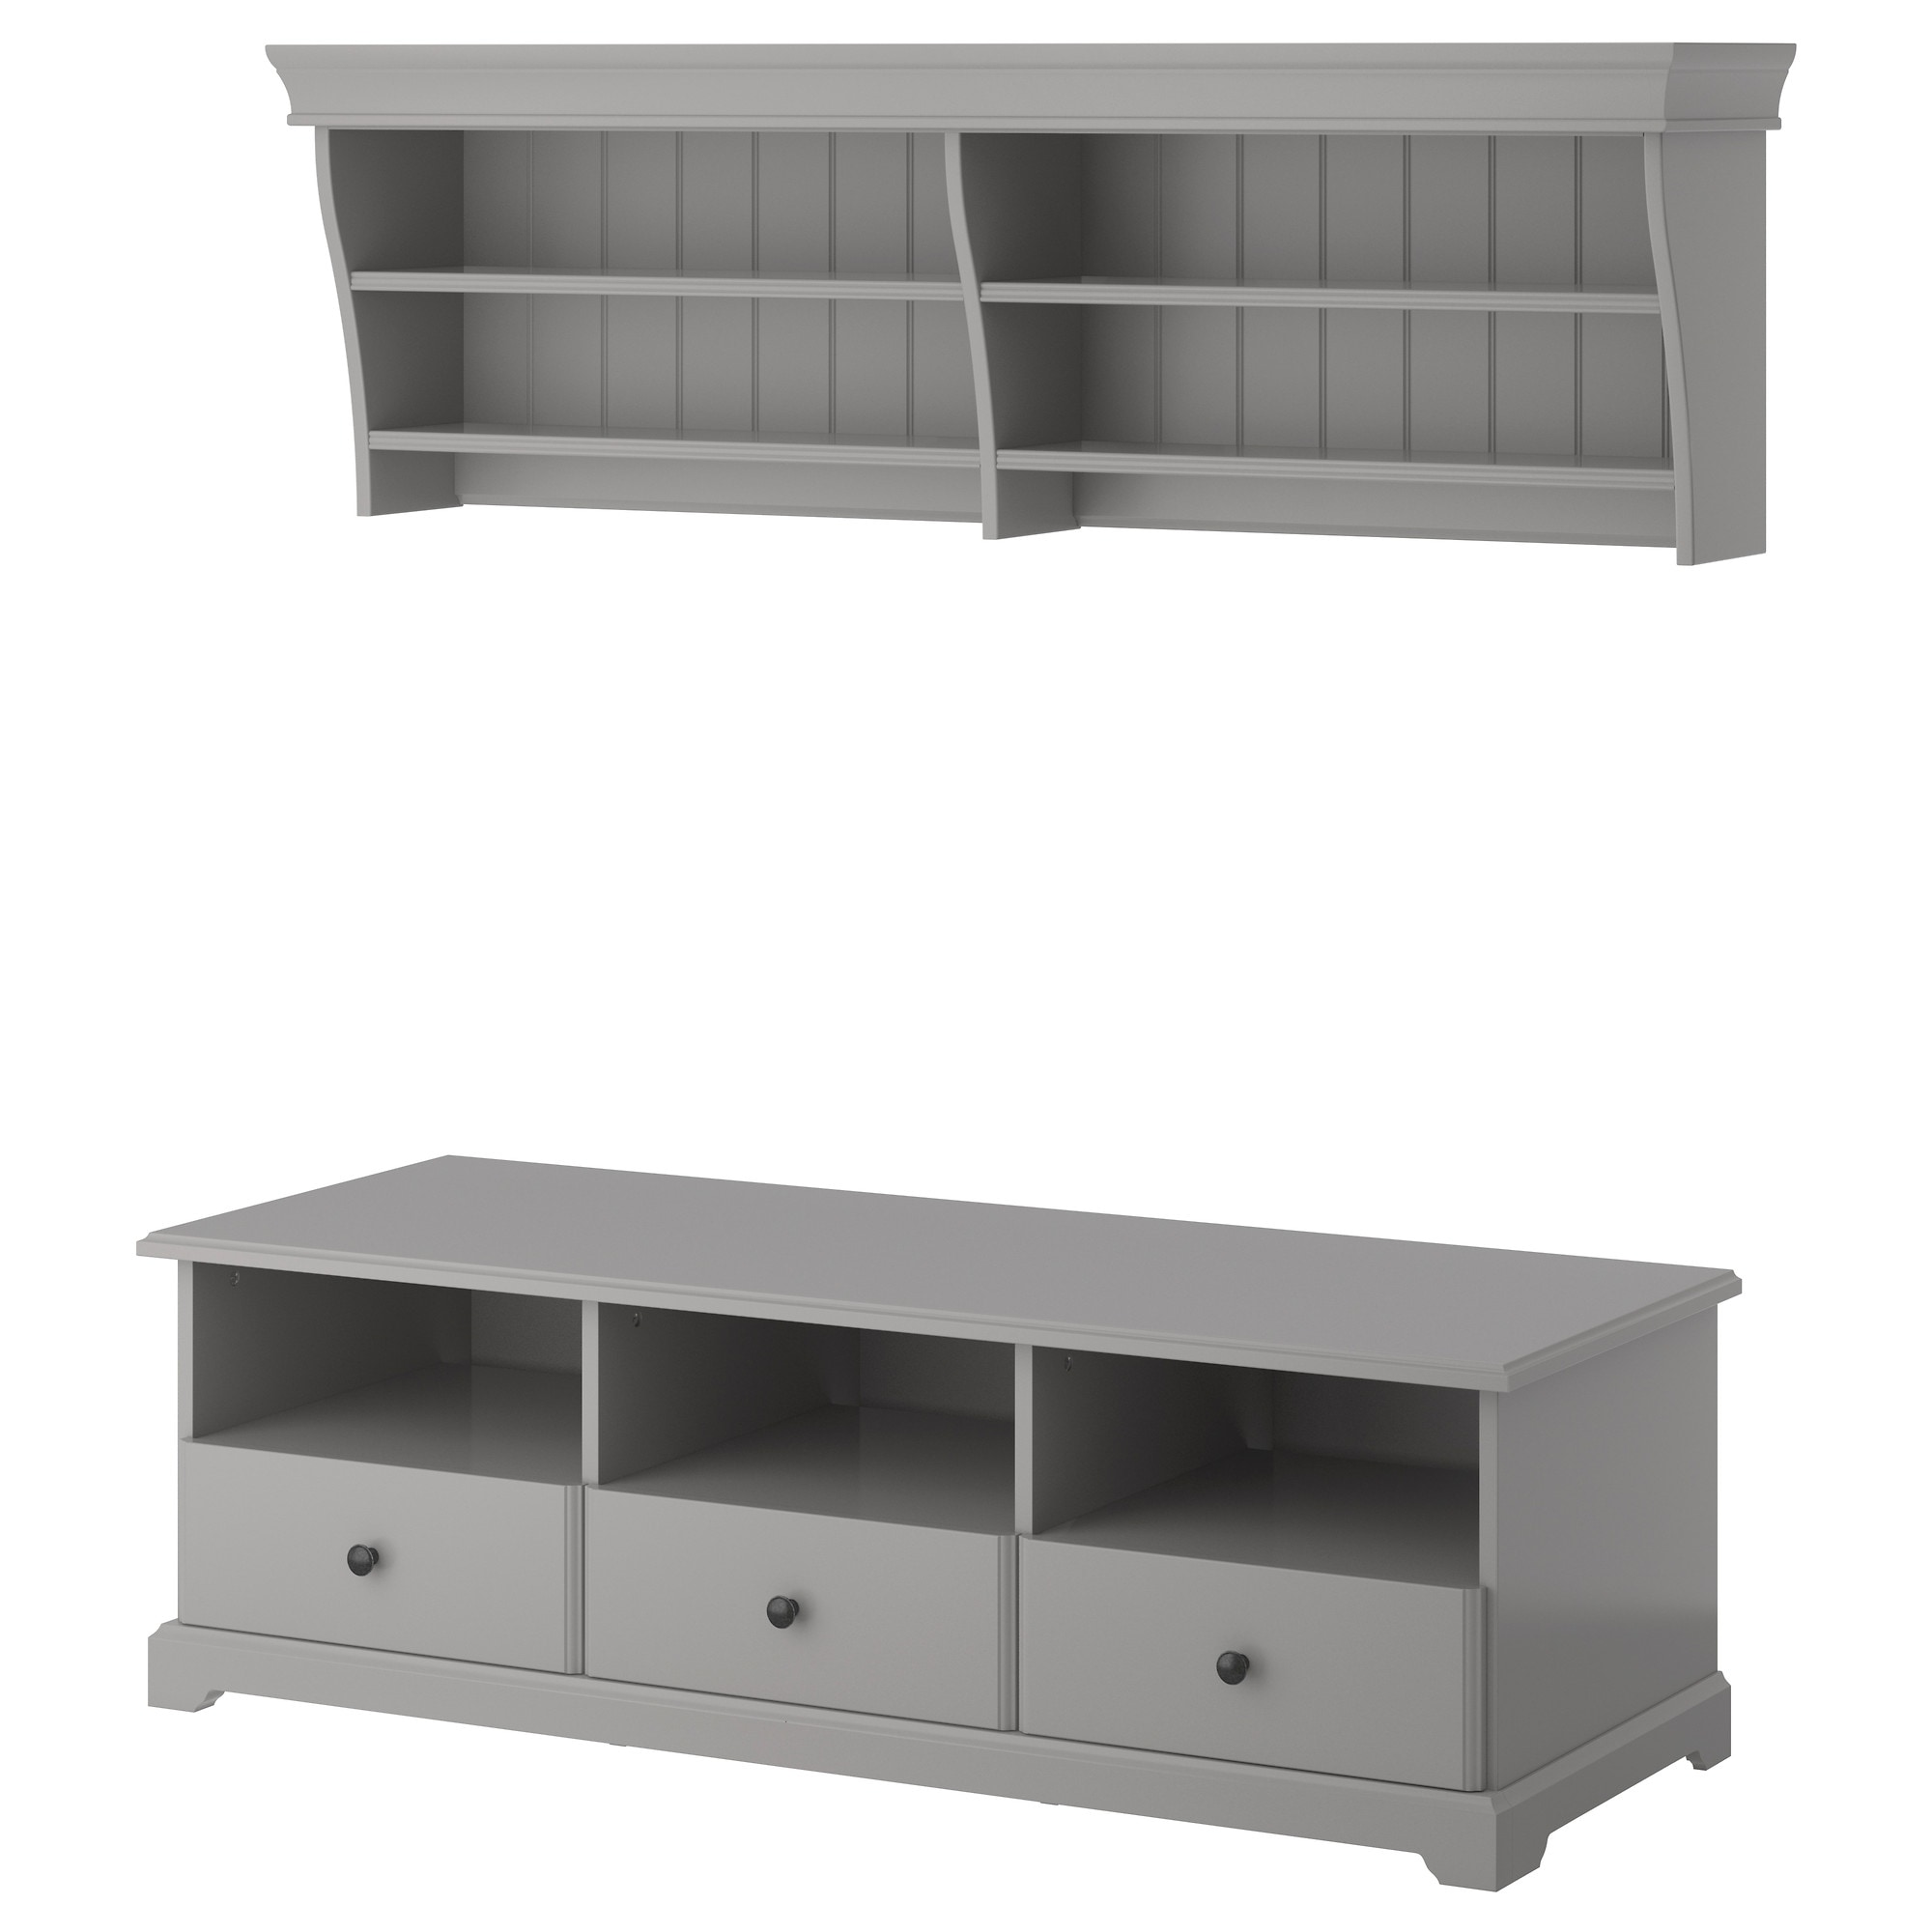 Muebles Televisor Perfect Muebles Televisor With Muebles  # Mueble Taquilla Ikea